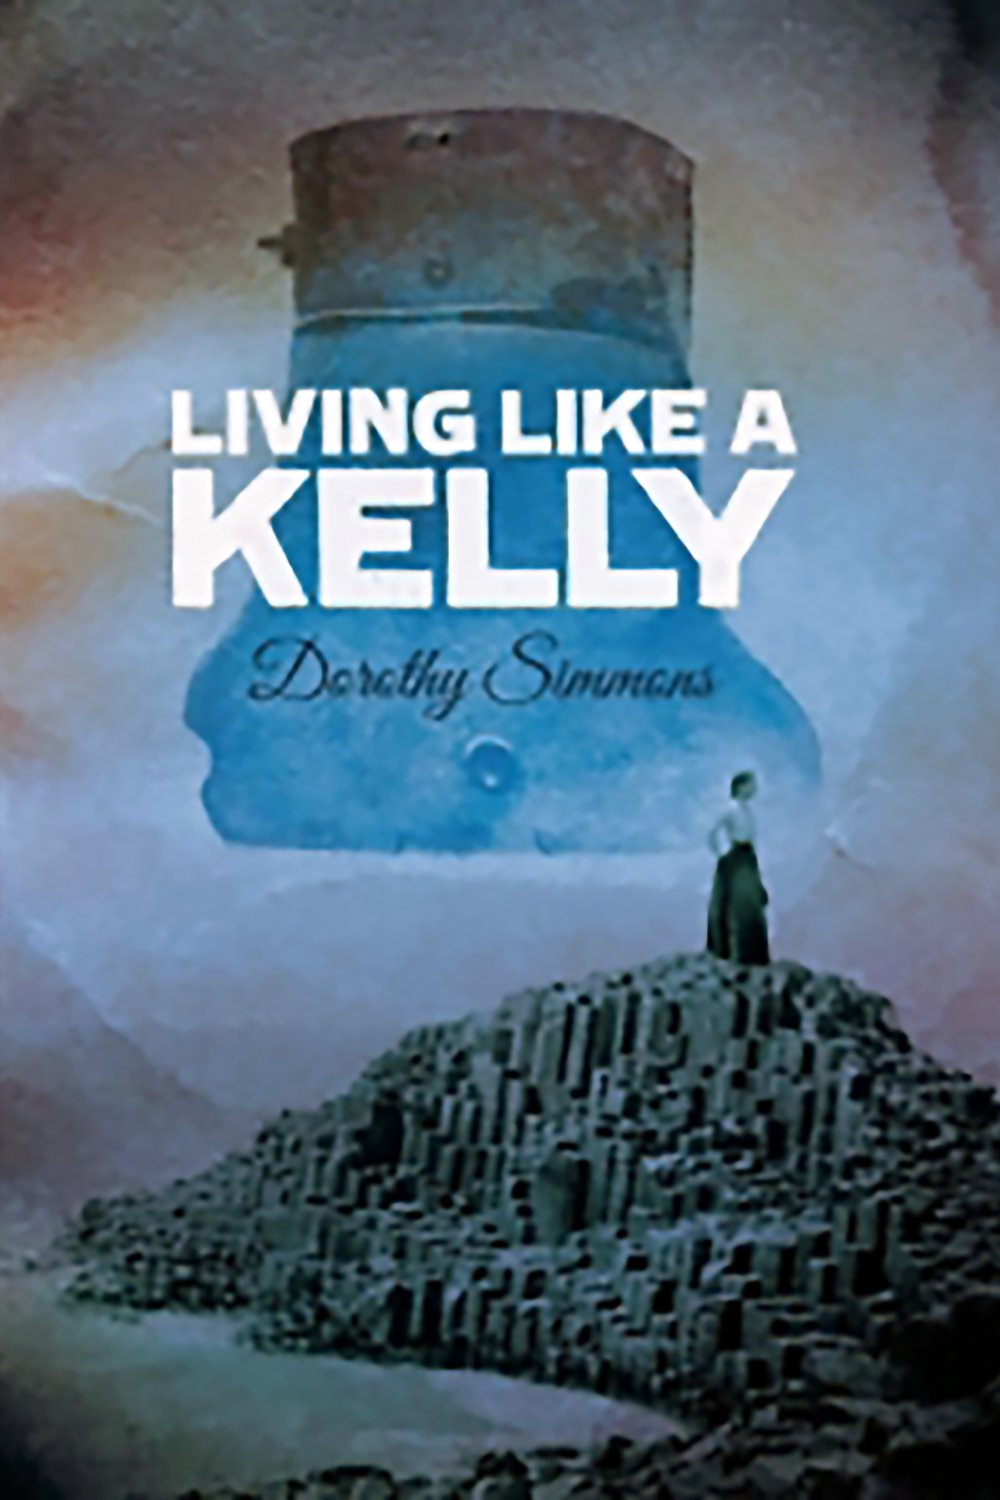 Living like a Kelly by Dorothy Simmons